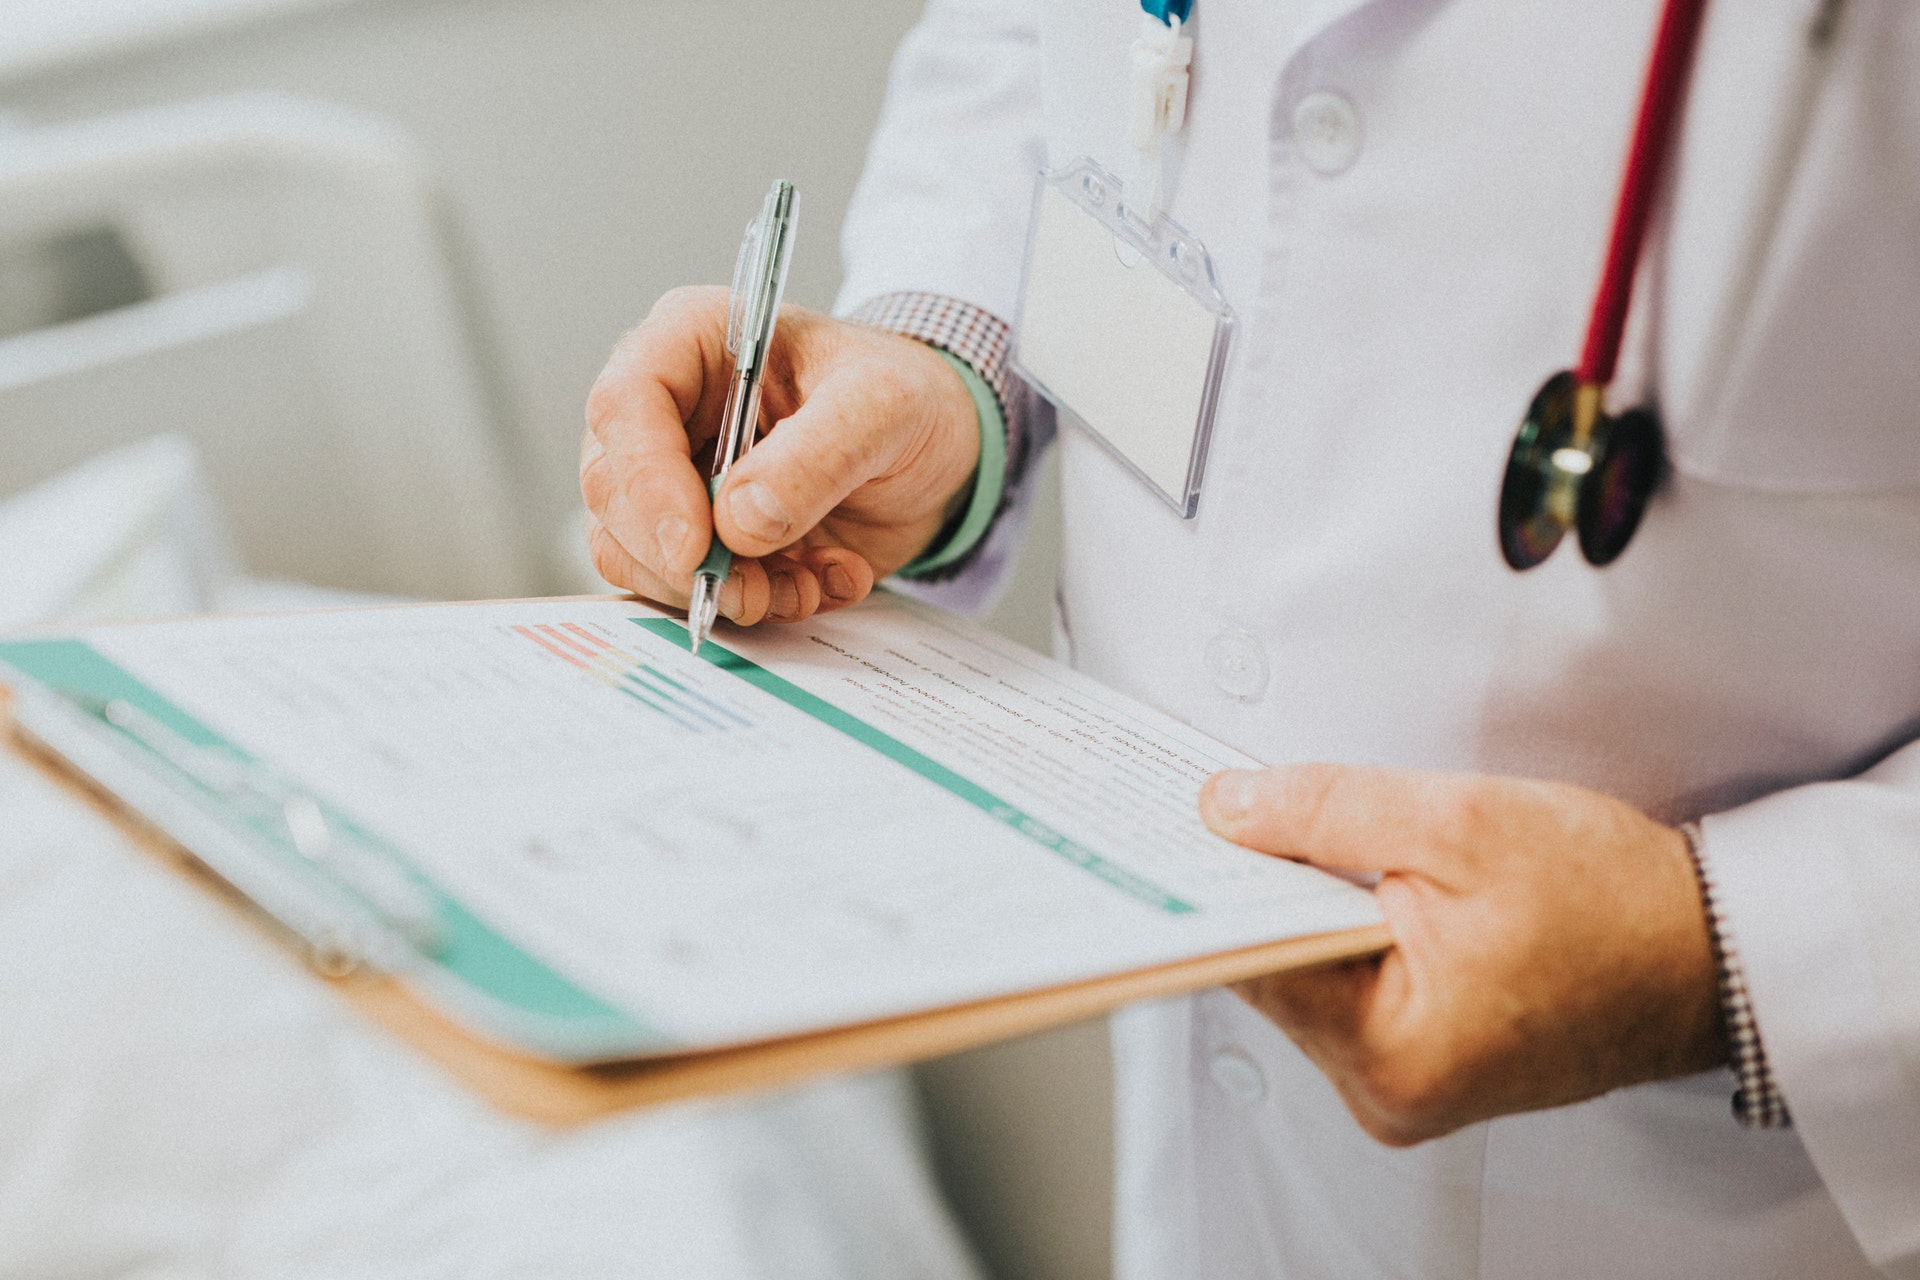 doctor holding clip board taking personal info